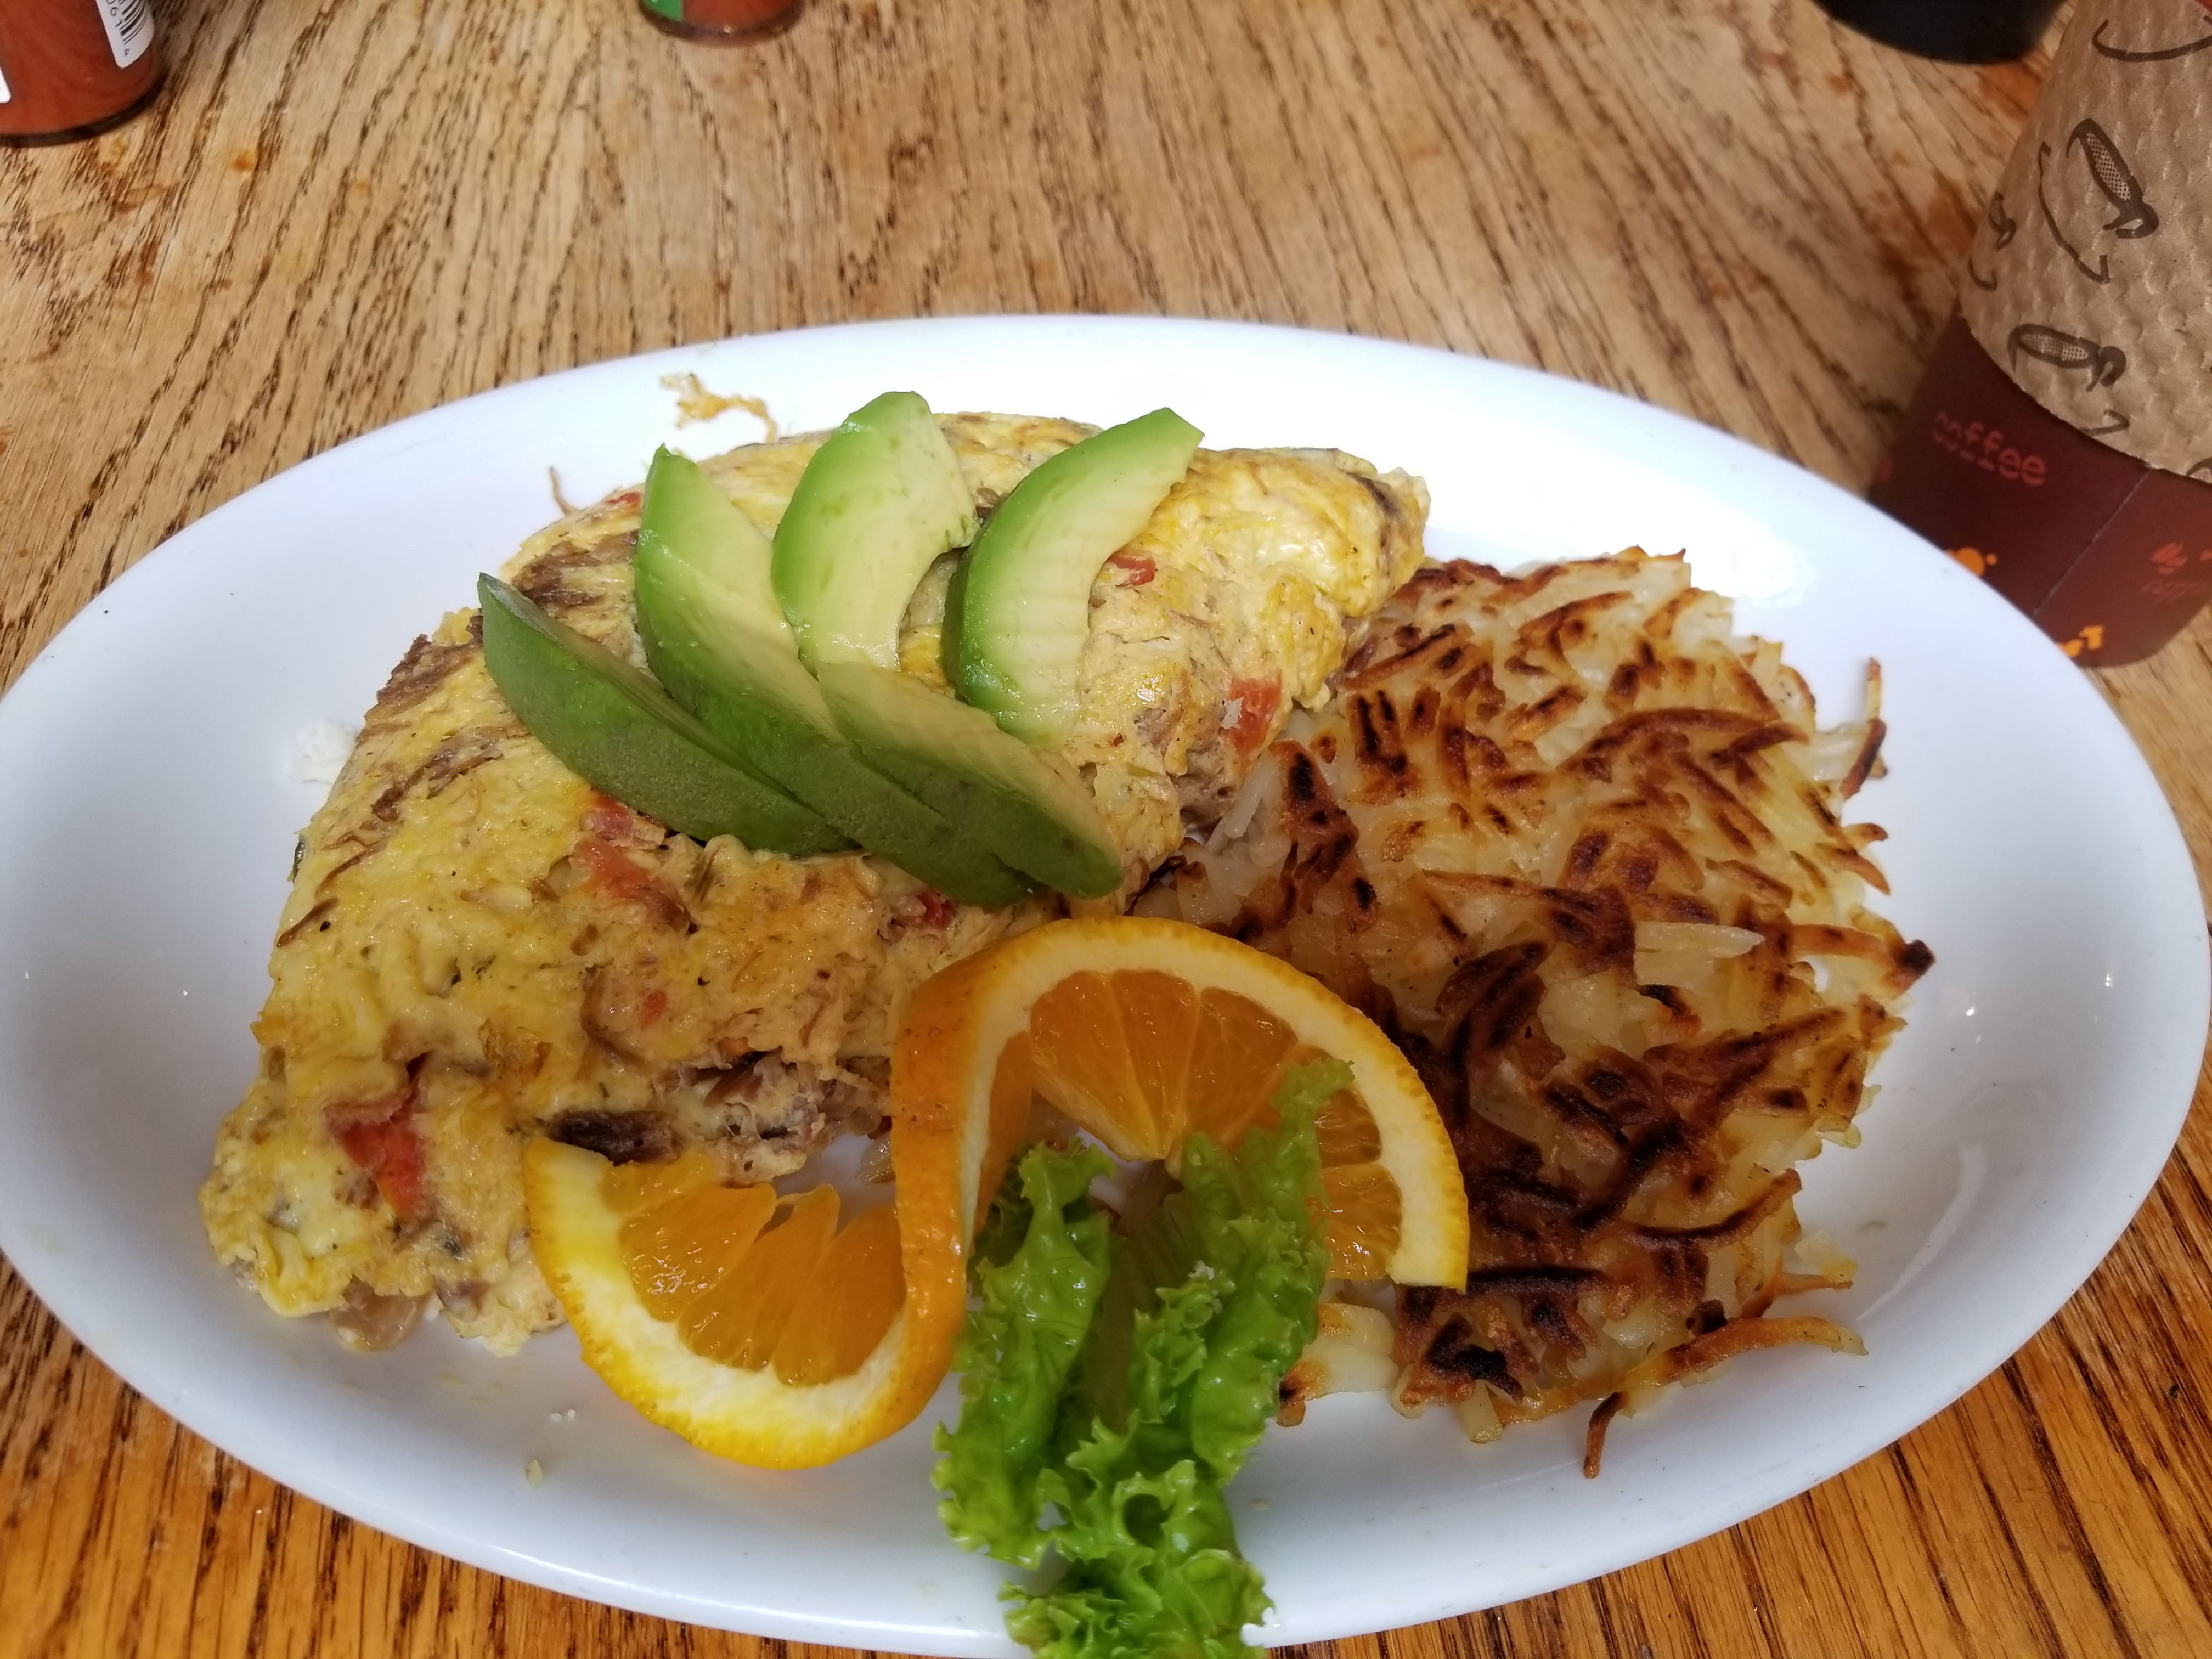 Denver Omelet with Hashbrowns